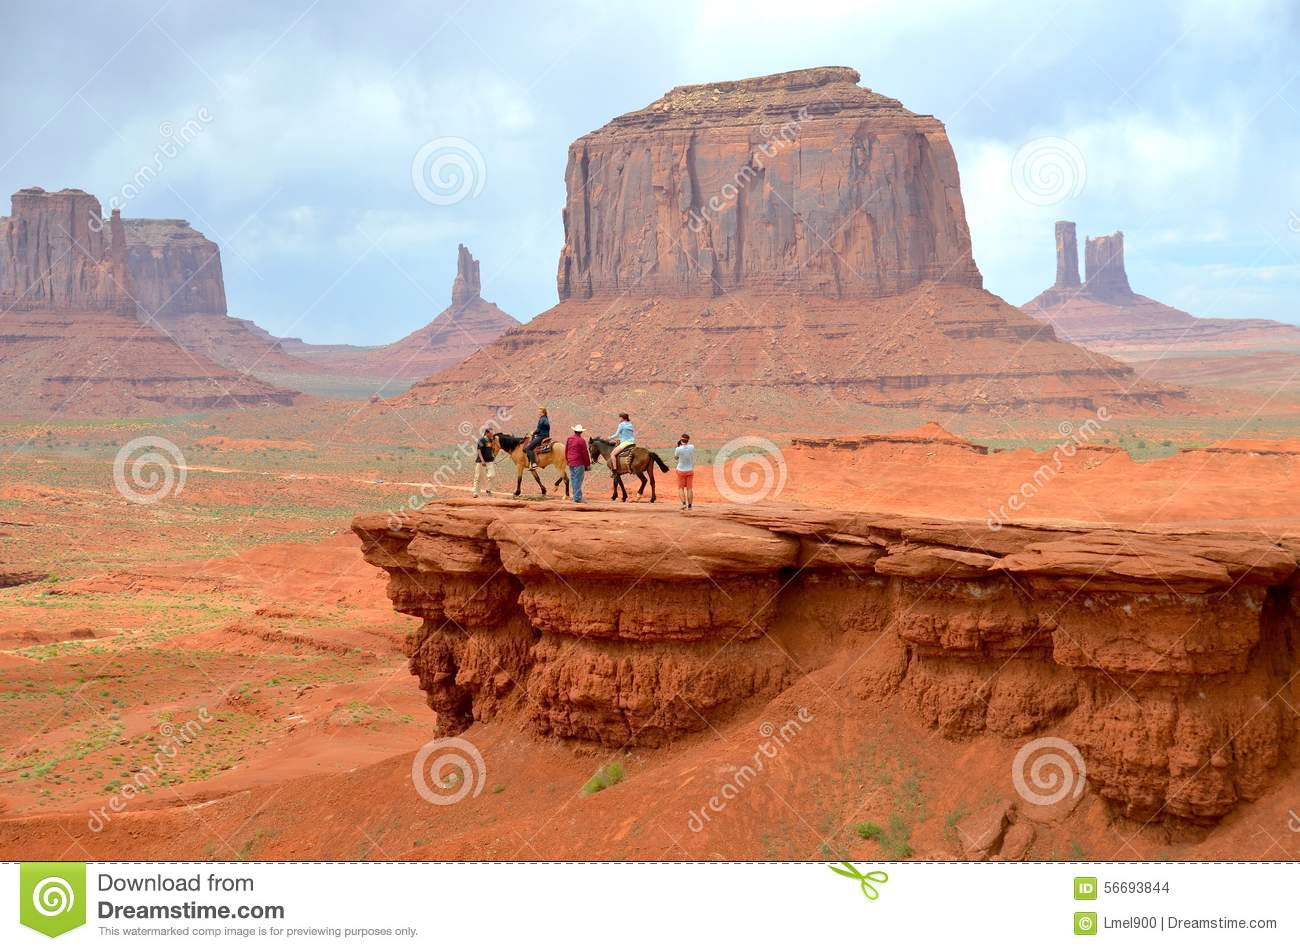 buddhist single men in monument valley Wolfkiller: wisdom from a nineteenth-century  a nineteenth-century navajo shepherd  of a navajo shepherd man who lived in the monument valley region.